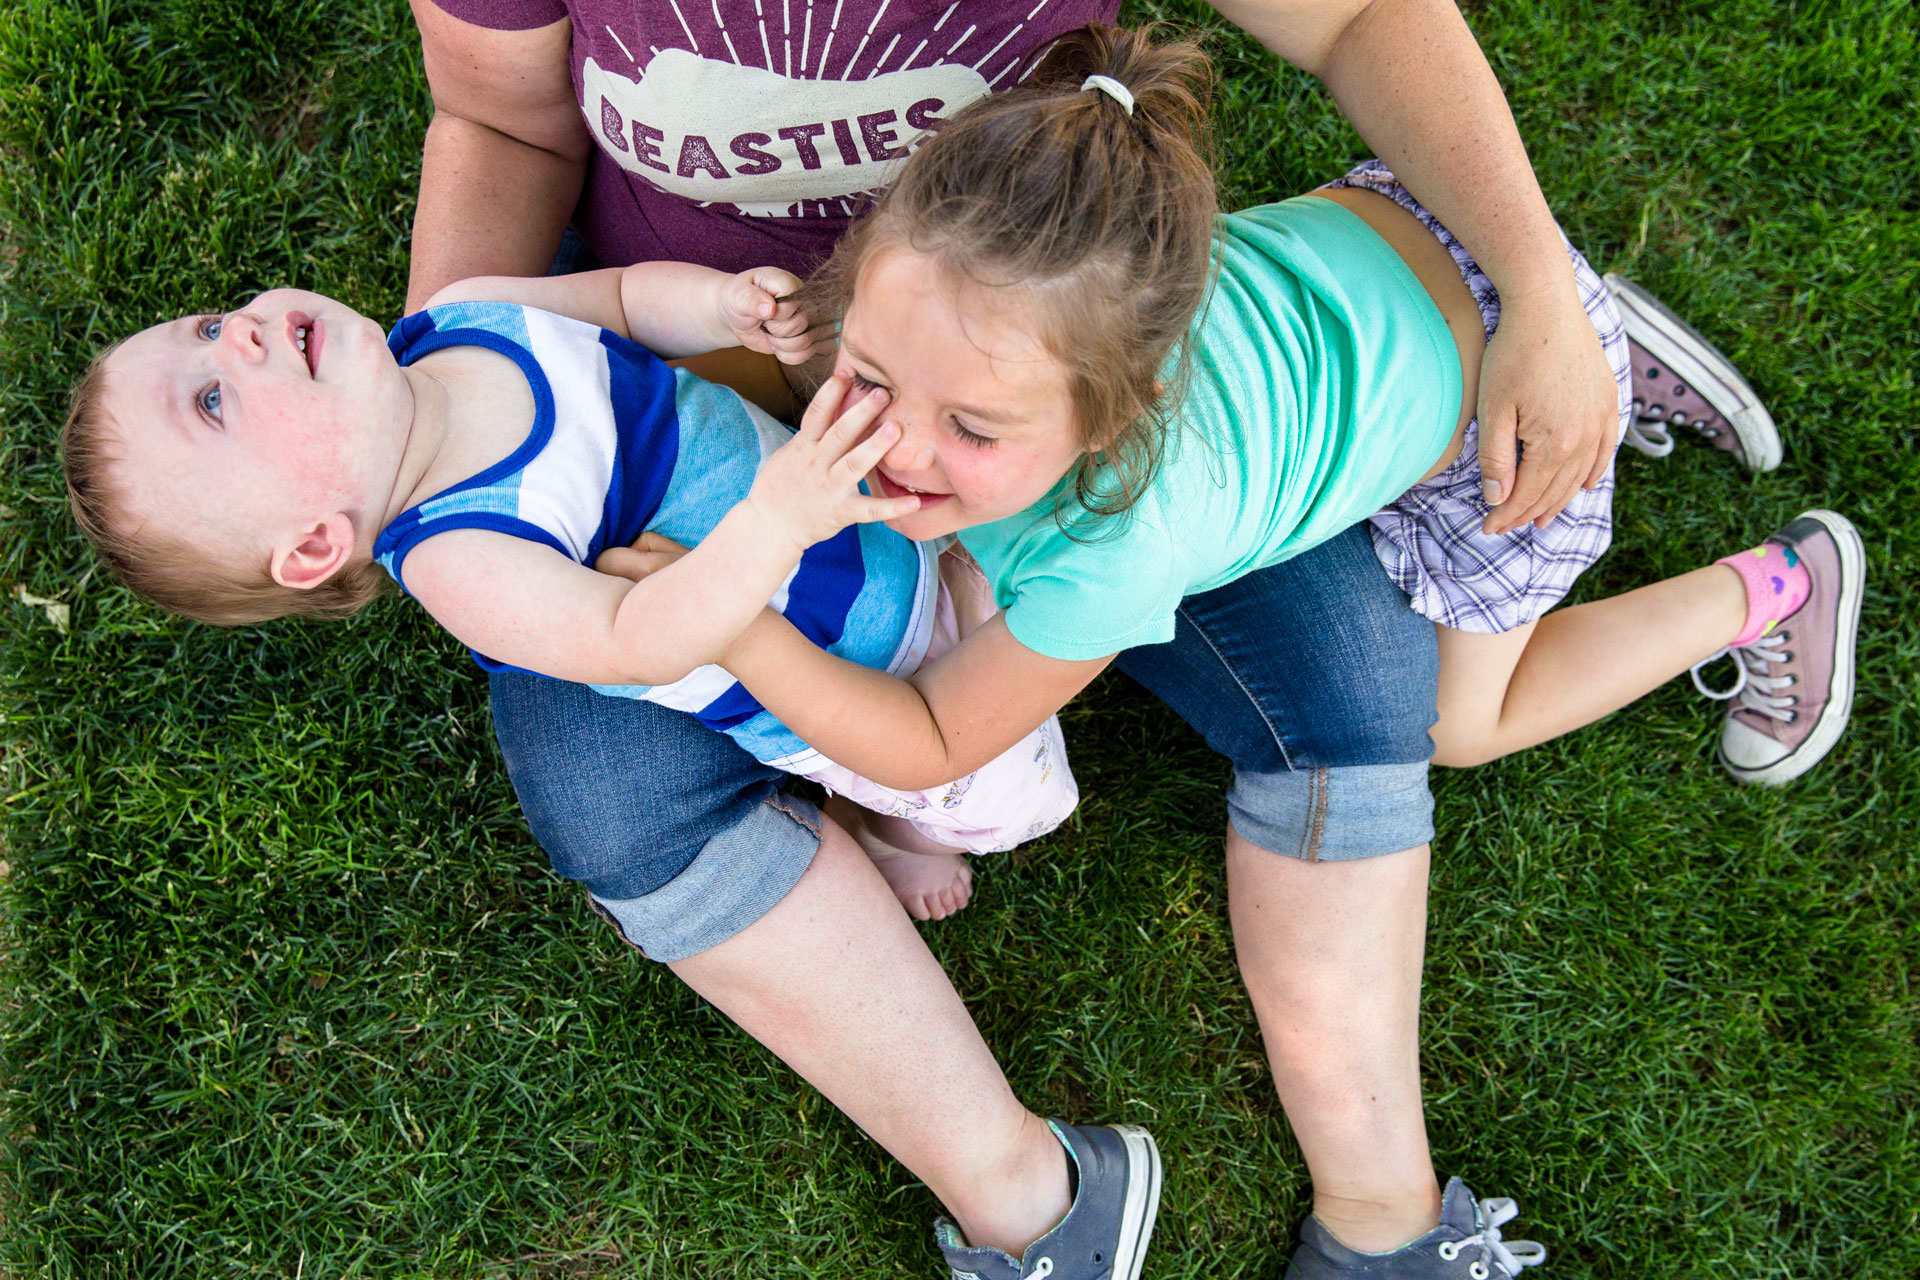 two kids falling over moms legs on the grass laughing